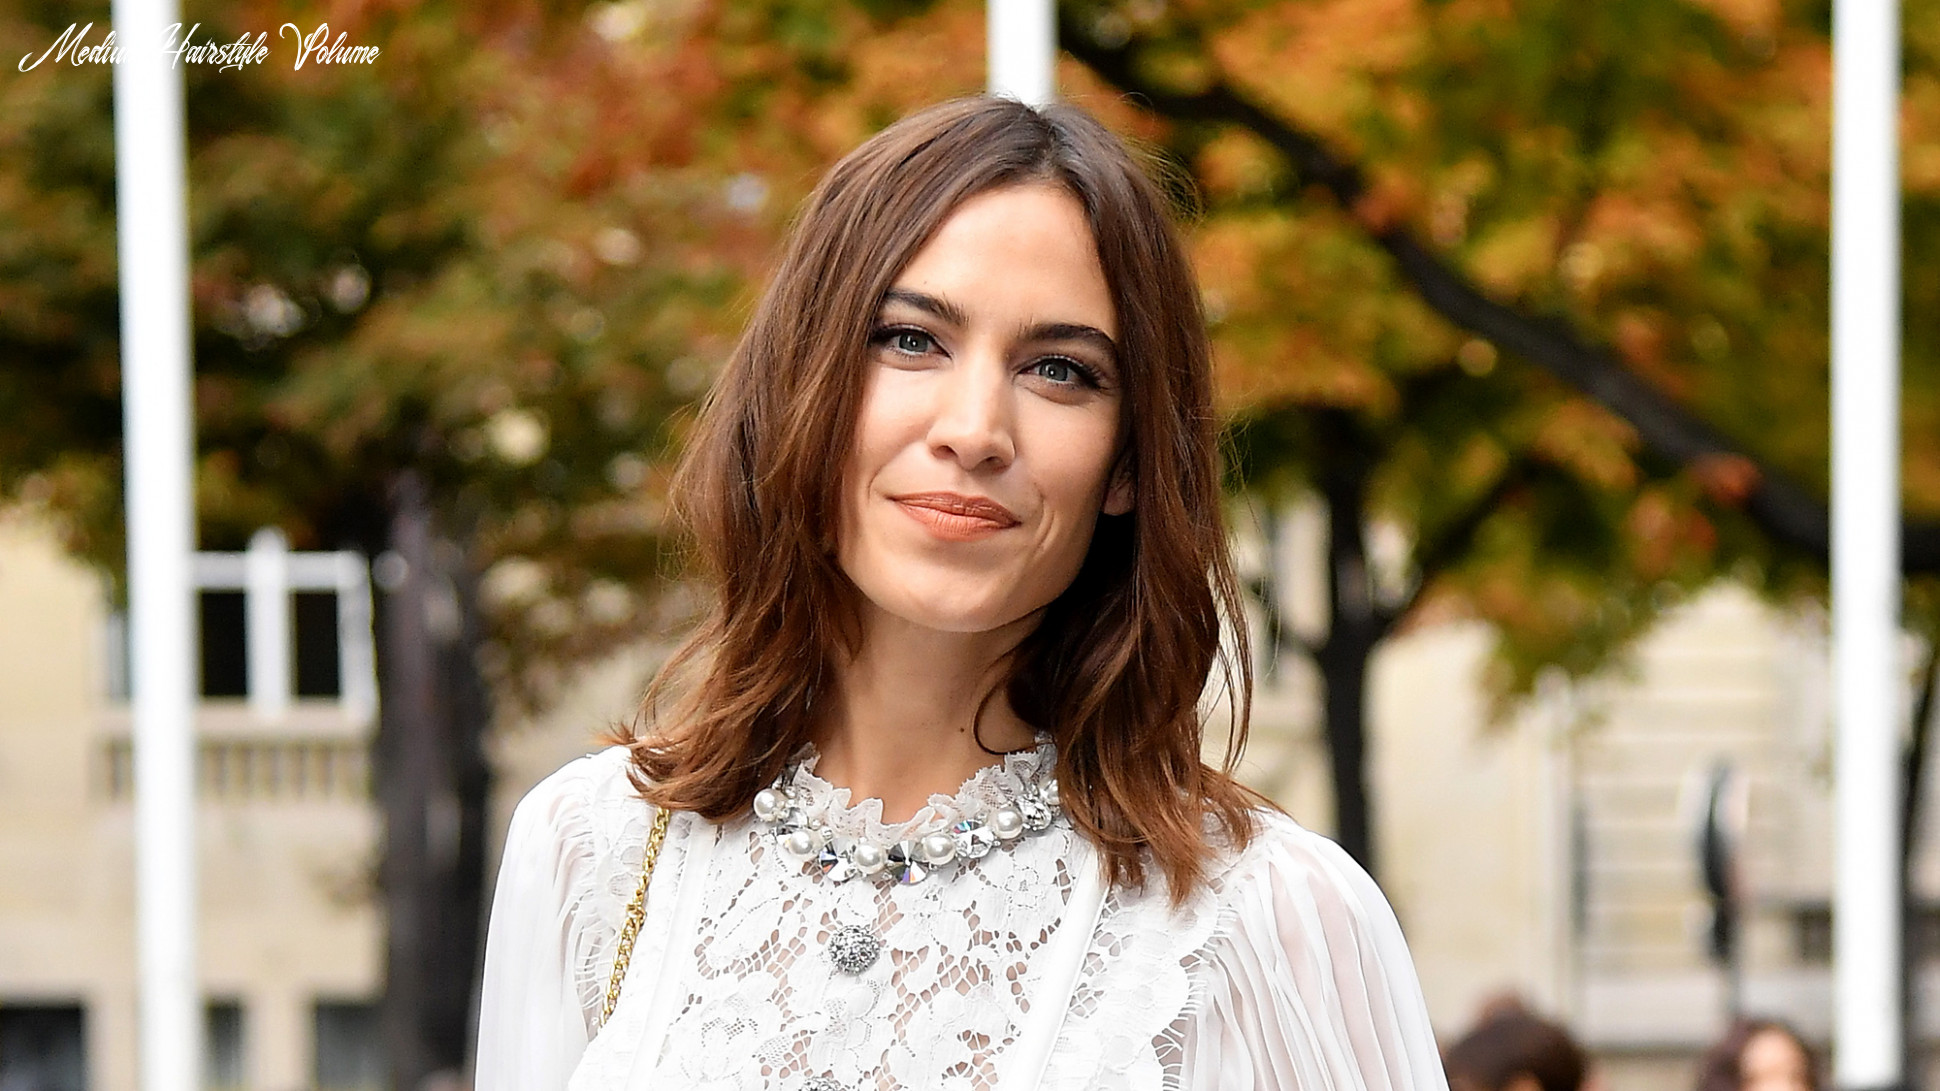 12 medium length hairstyles to take straight to the salon | Marie Claire